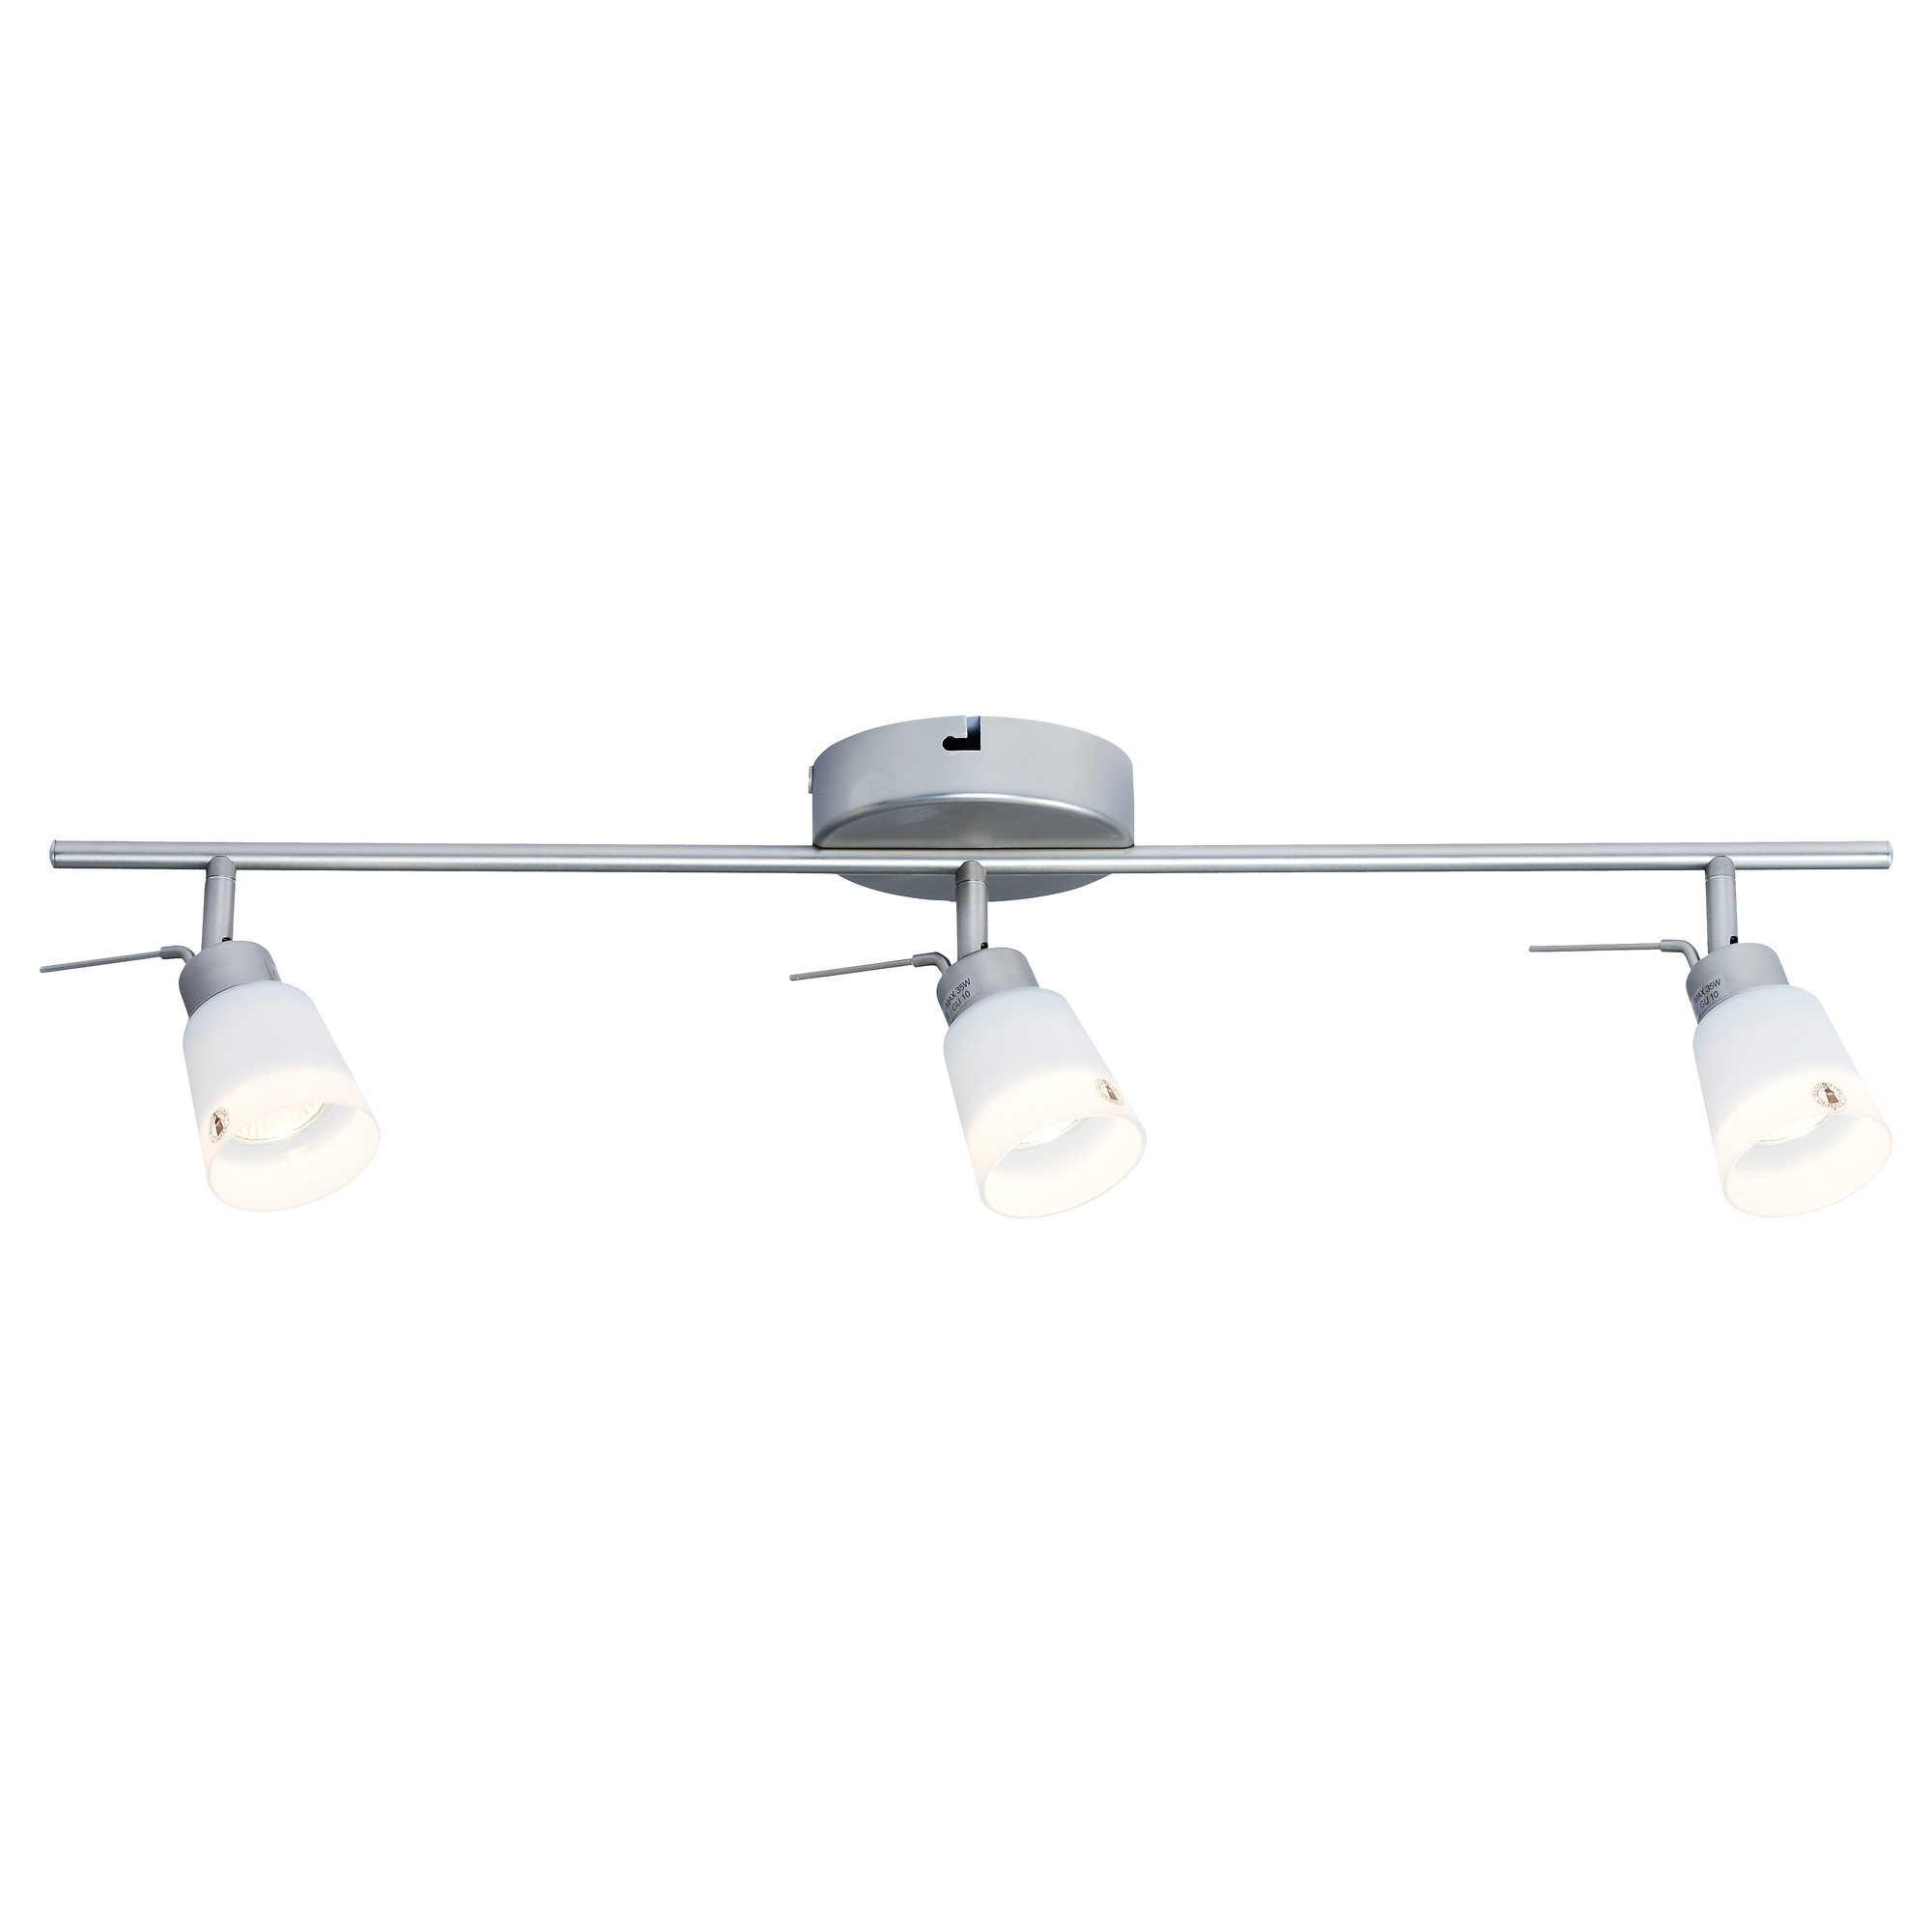 track lighting replacement. BASISK Ceiling Track, 3 Spotlights - IKEA Lighting Replacement For Kitchen Track :